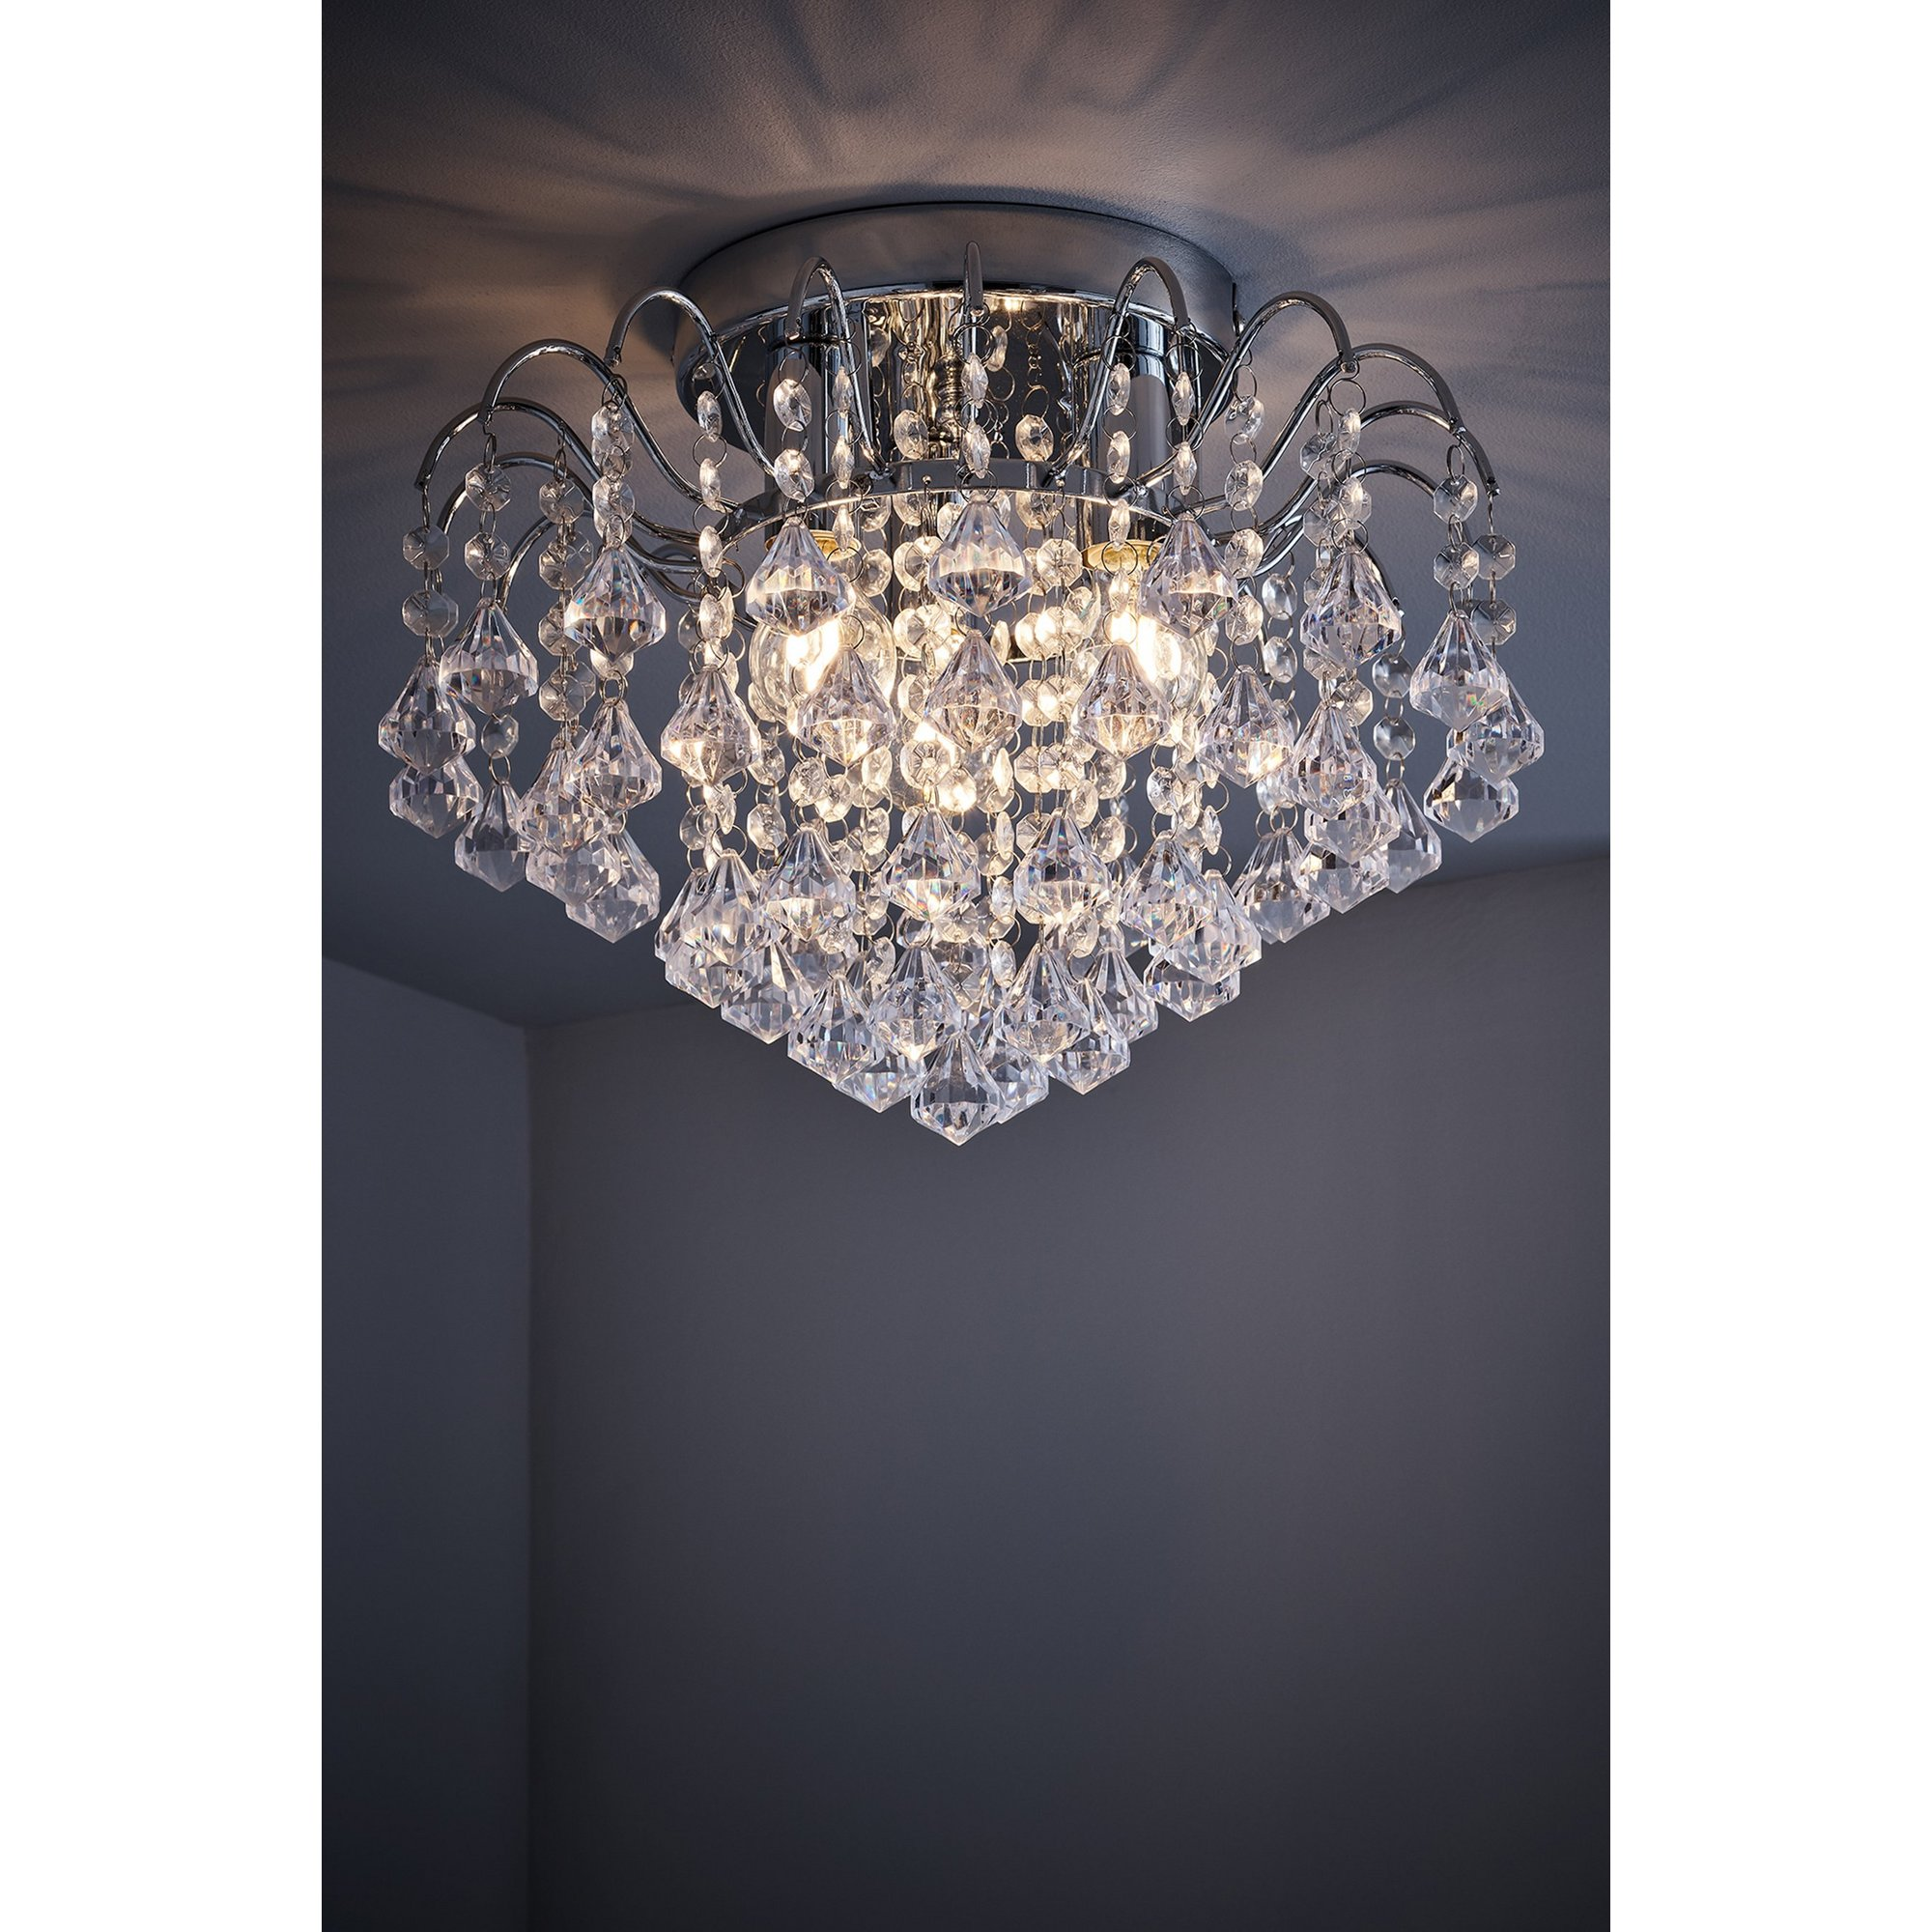 Image of 3 Light Acrylic Beaded Droplet Ceiling Light